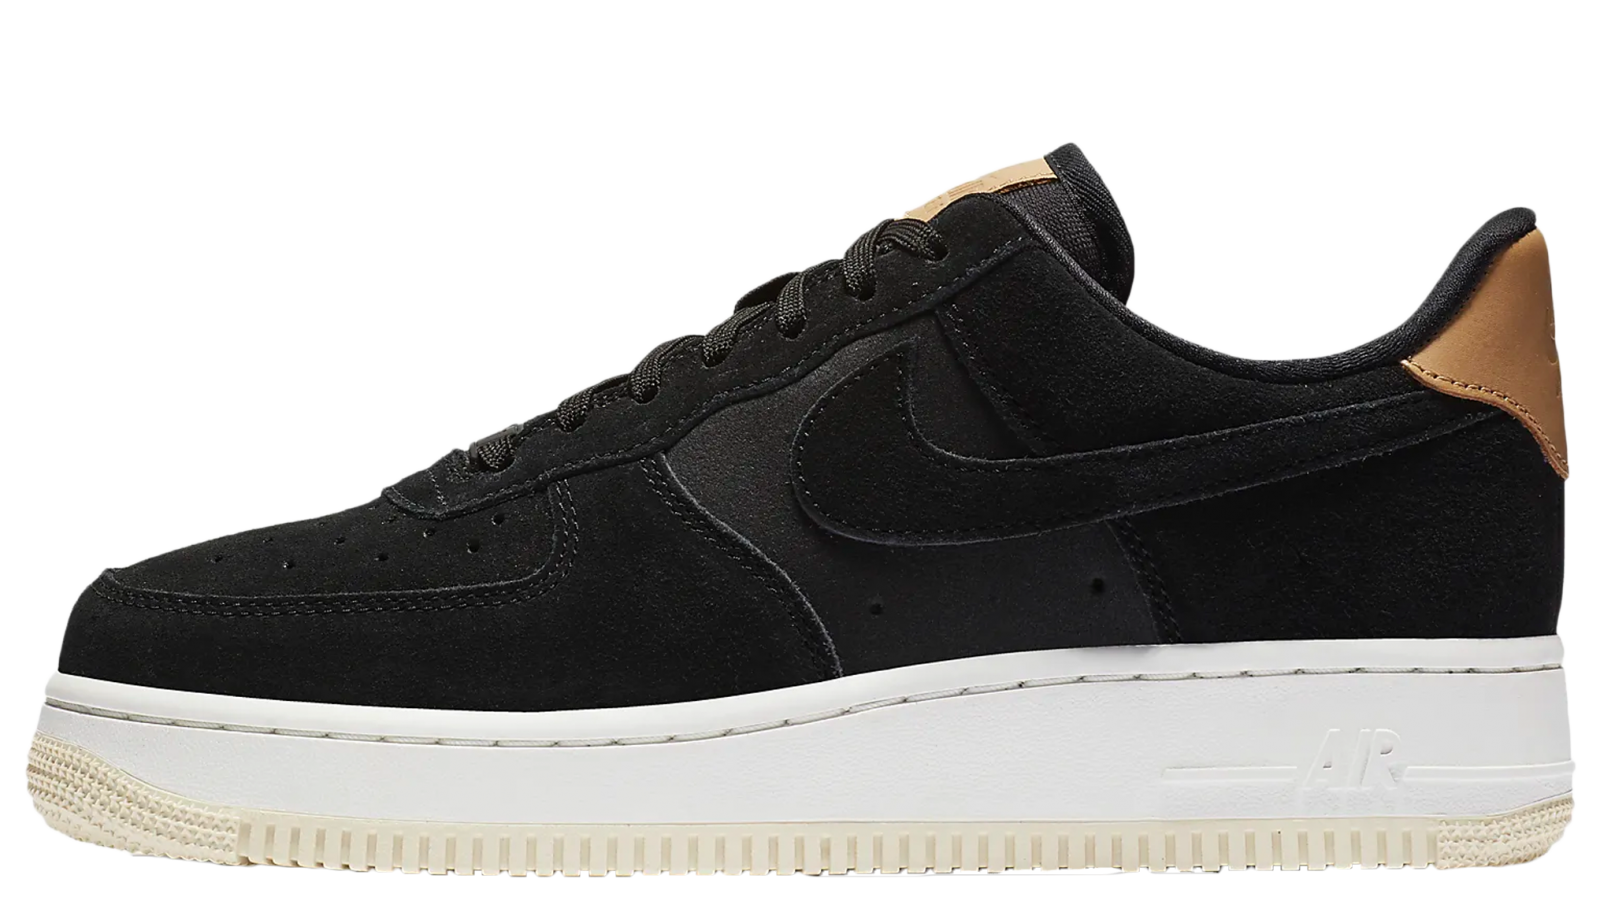 new style 12ebe 289a9 For more news on Nike s latest Air Force 1s, stay tuned to our social media  pages. UK true DD MM YYYY